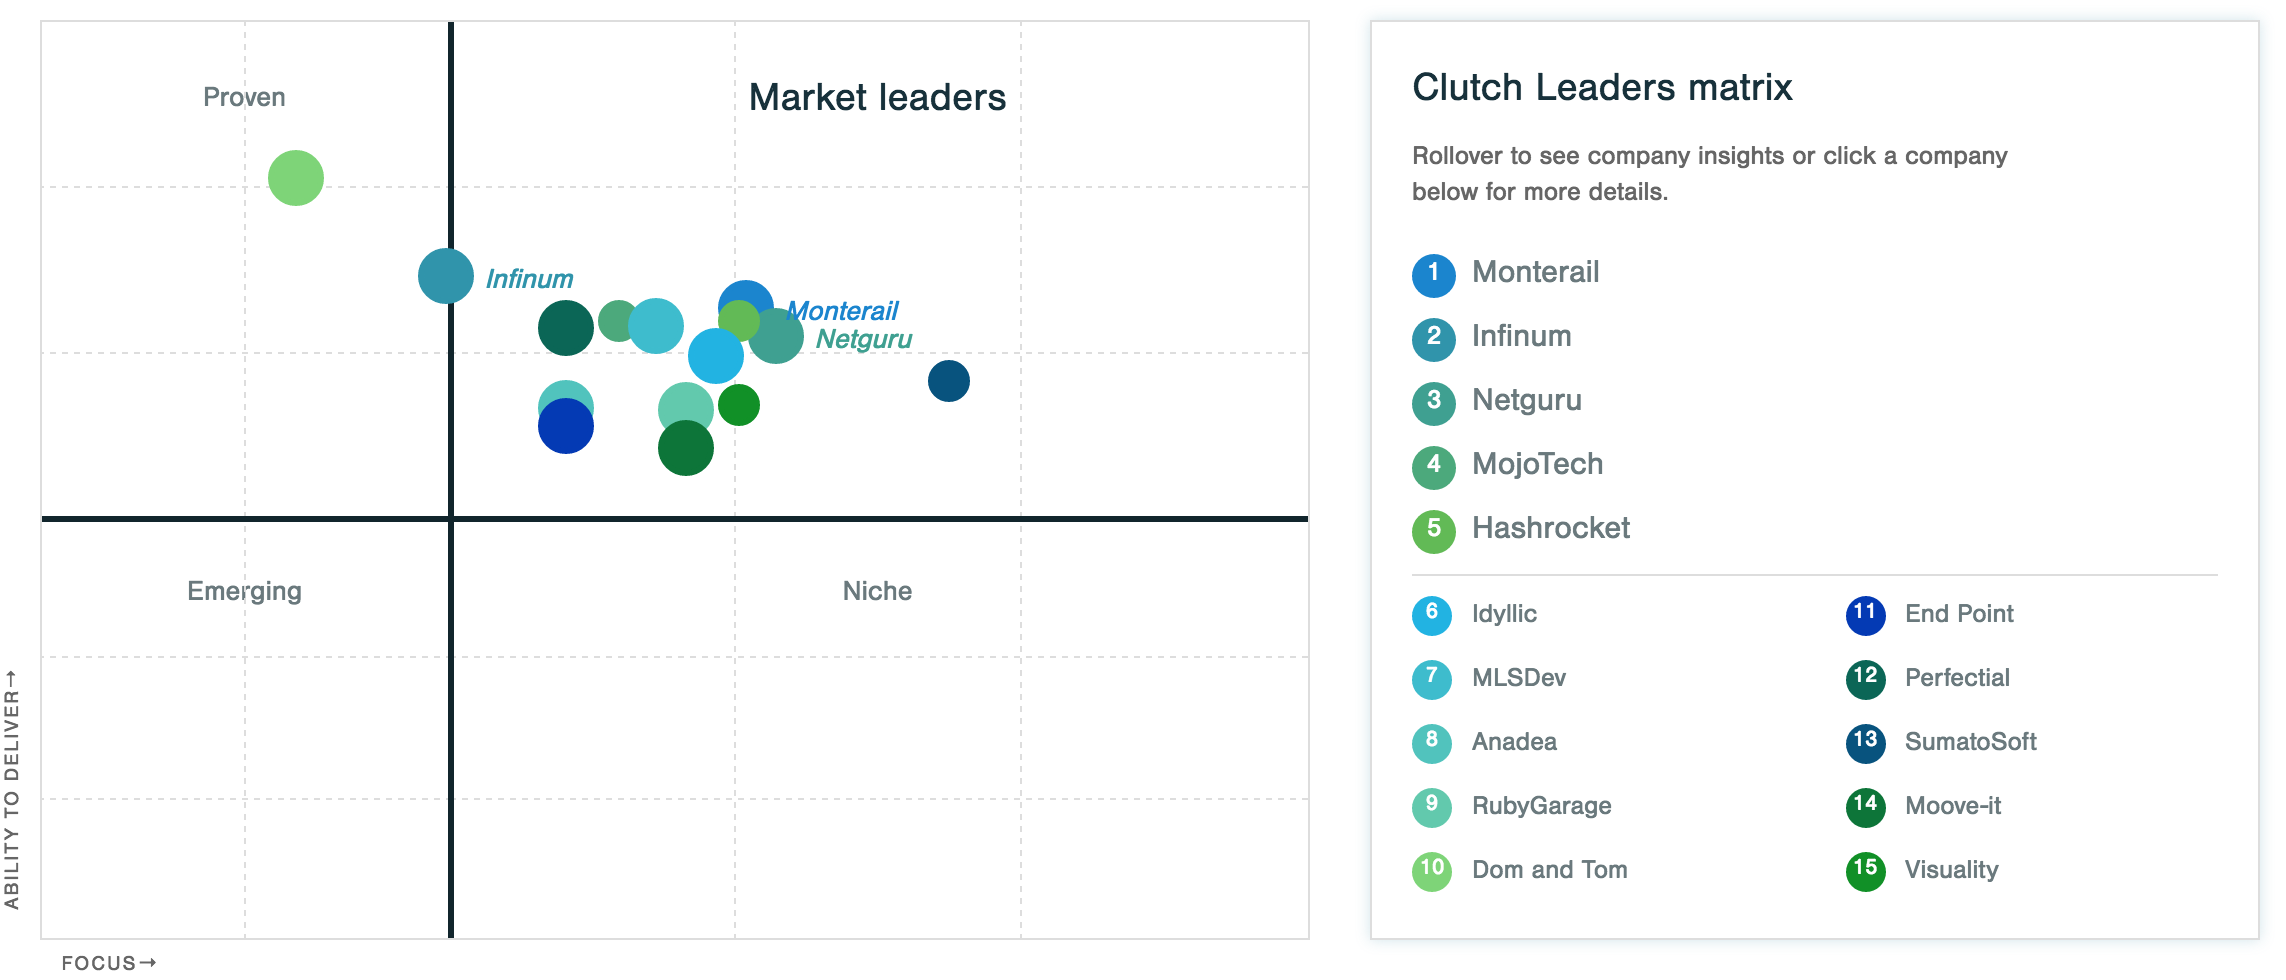 Leader matrix of top Ruby on Rails companies